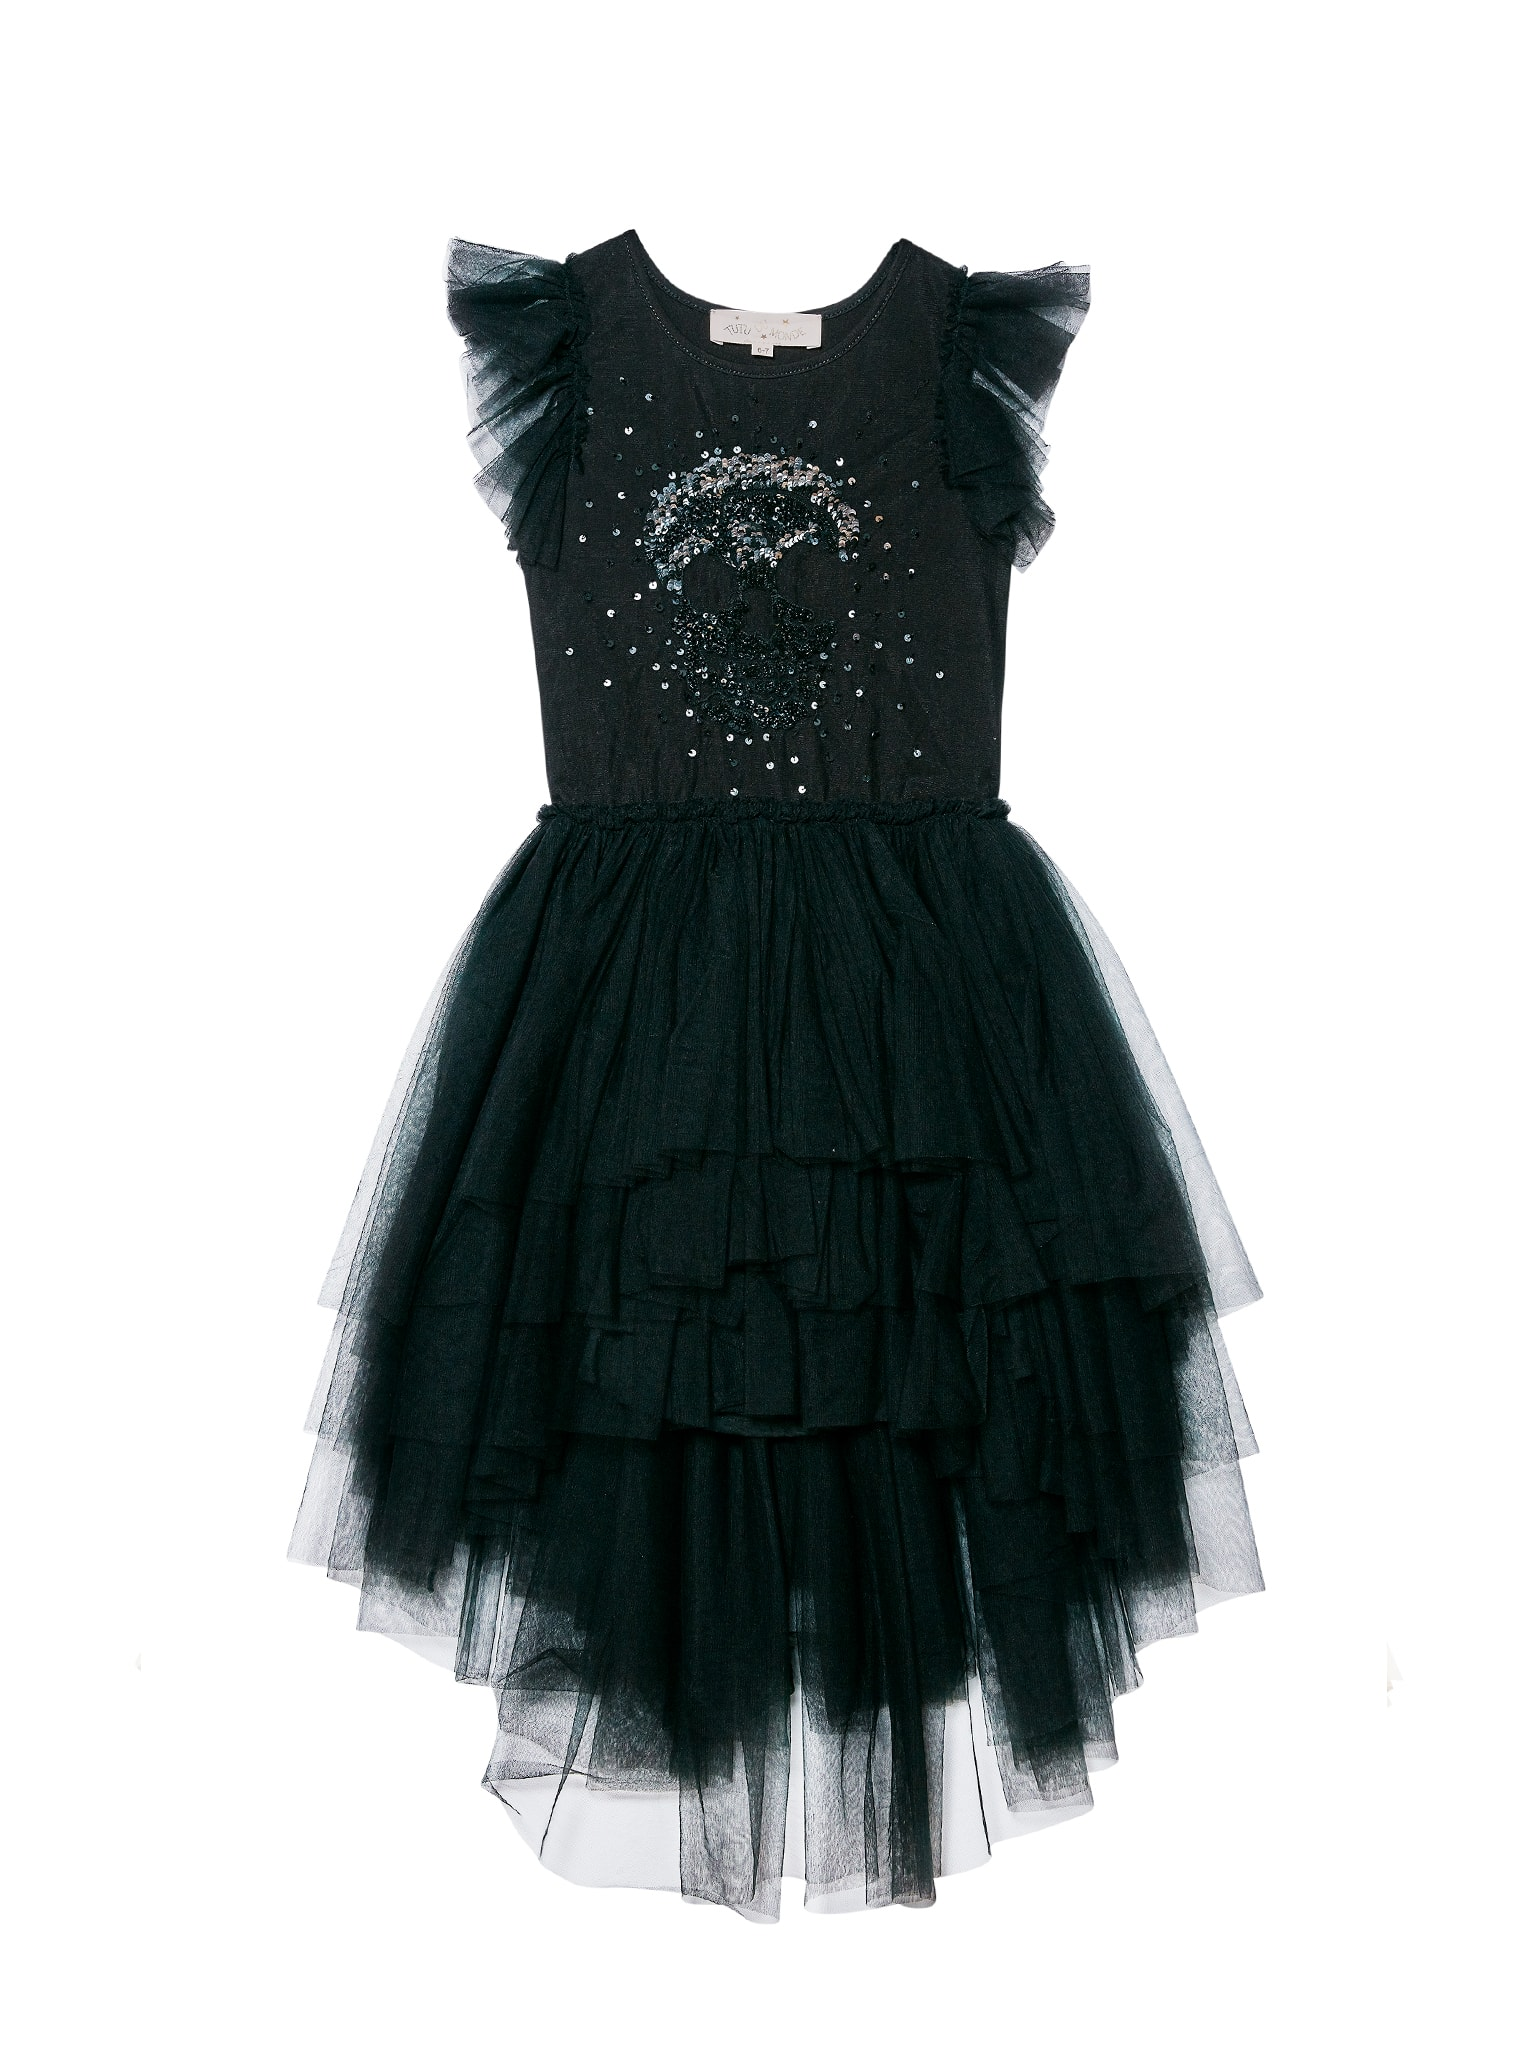 Tdm3736 embroidered dress black 01 min